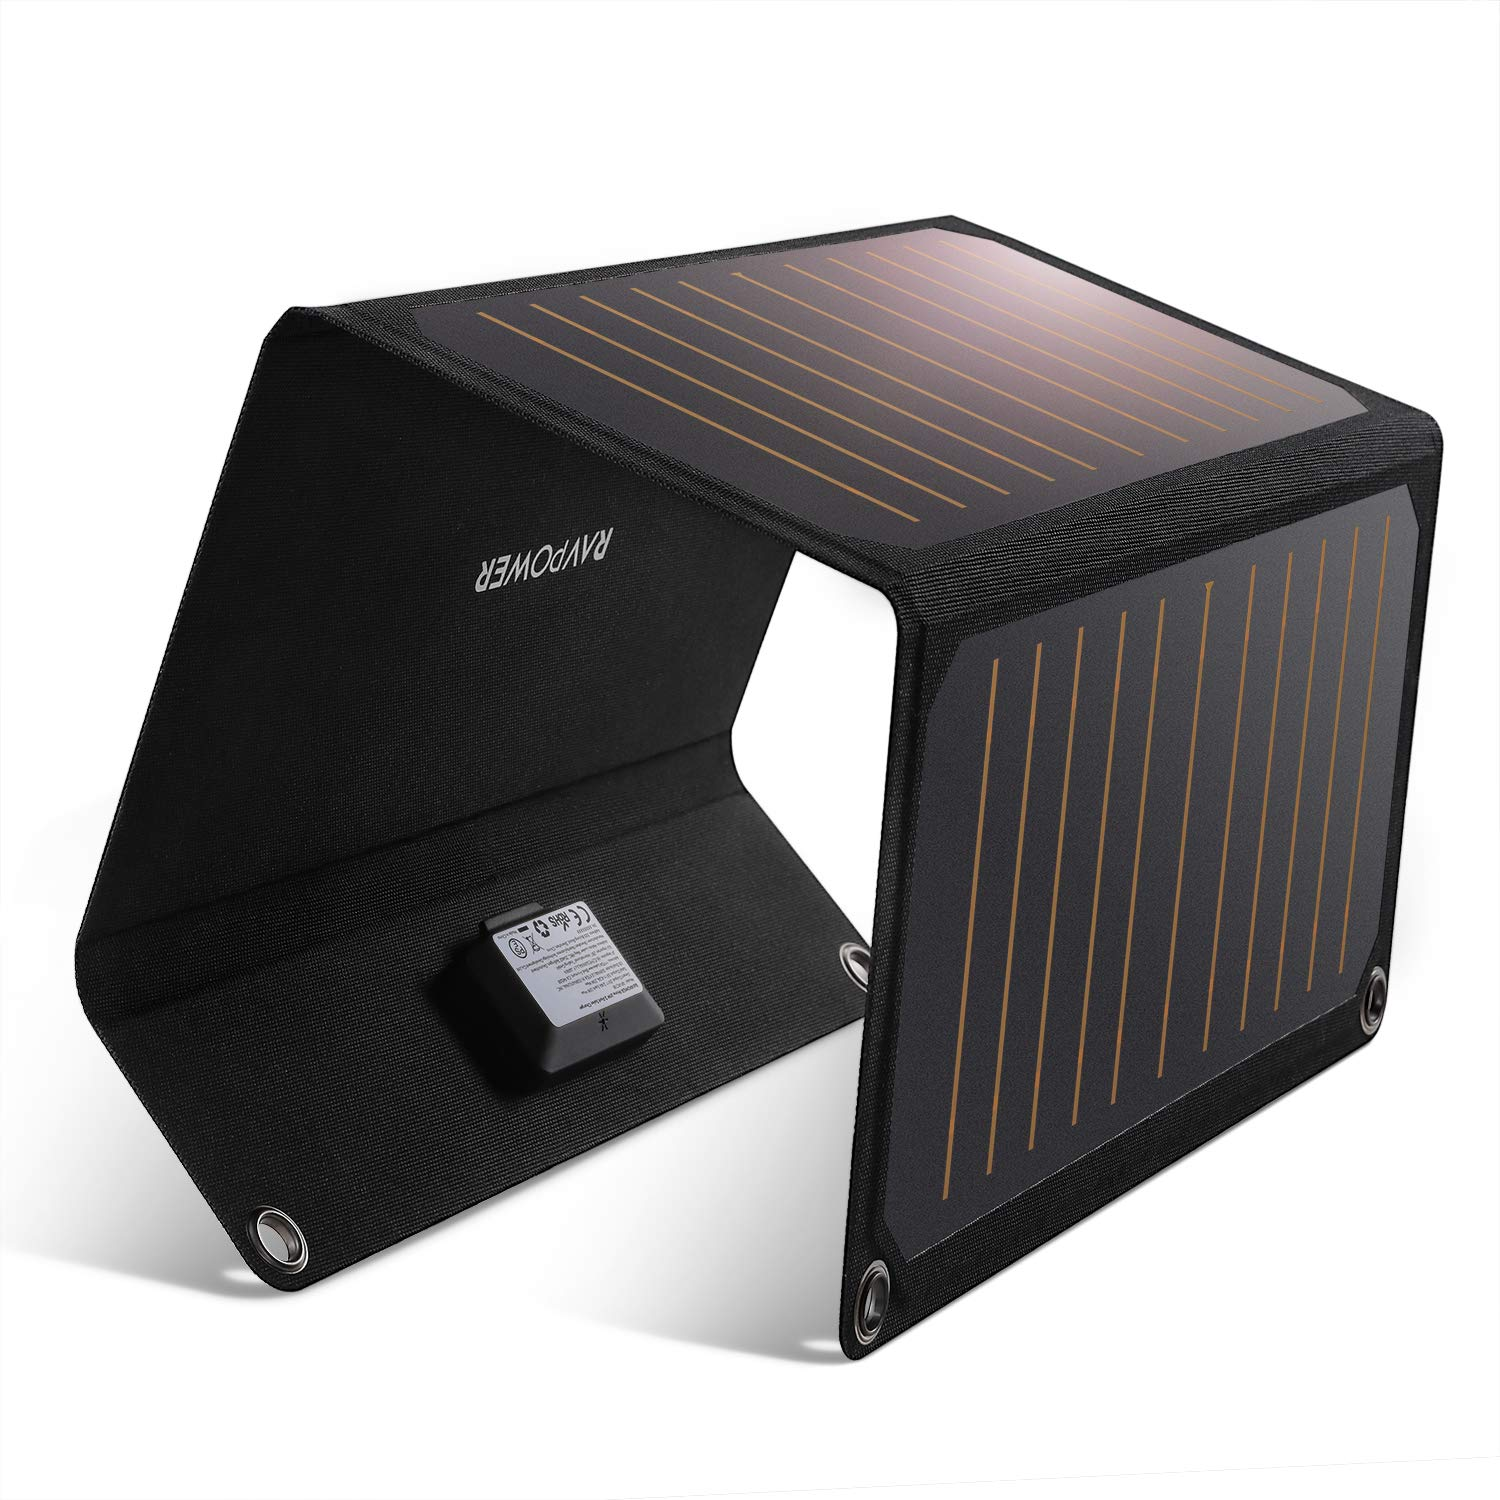 RAVPower Solar Charger 21W Solar Panel with Dual USB Port Waterproof Foldable Camping Travel Charger Compatible iPhone Xs XS Max XR X 8 7 Plus, iPad, Galaxy S9 S8 Edge Plus, Note, LG, Nexus and More